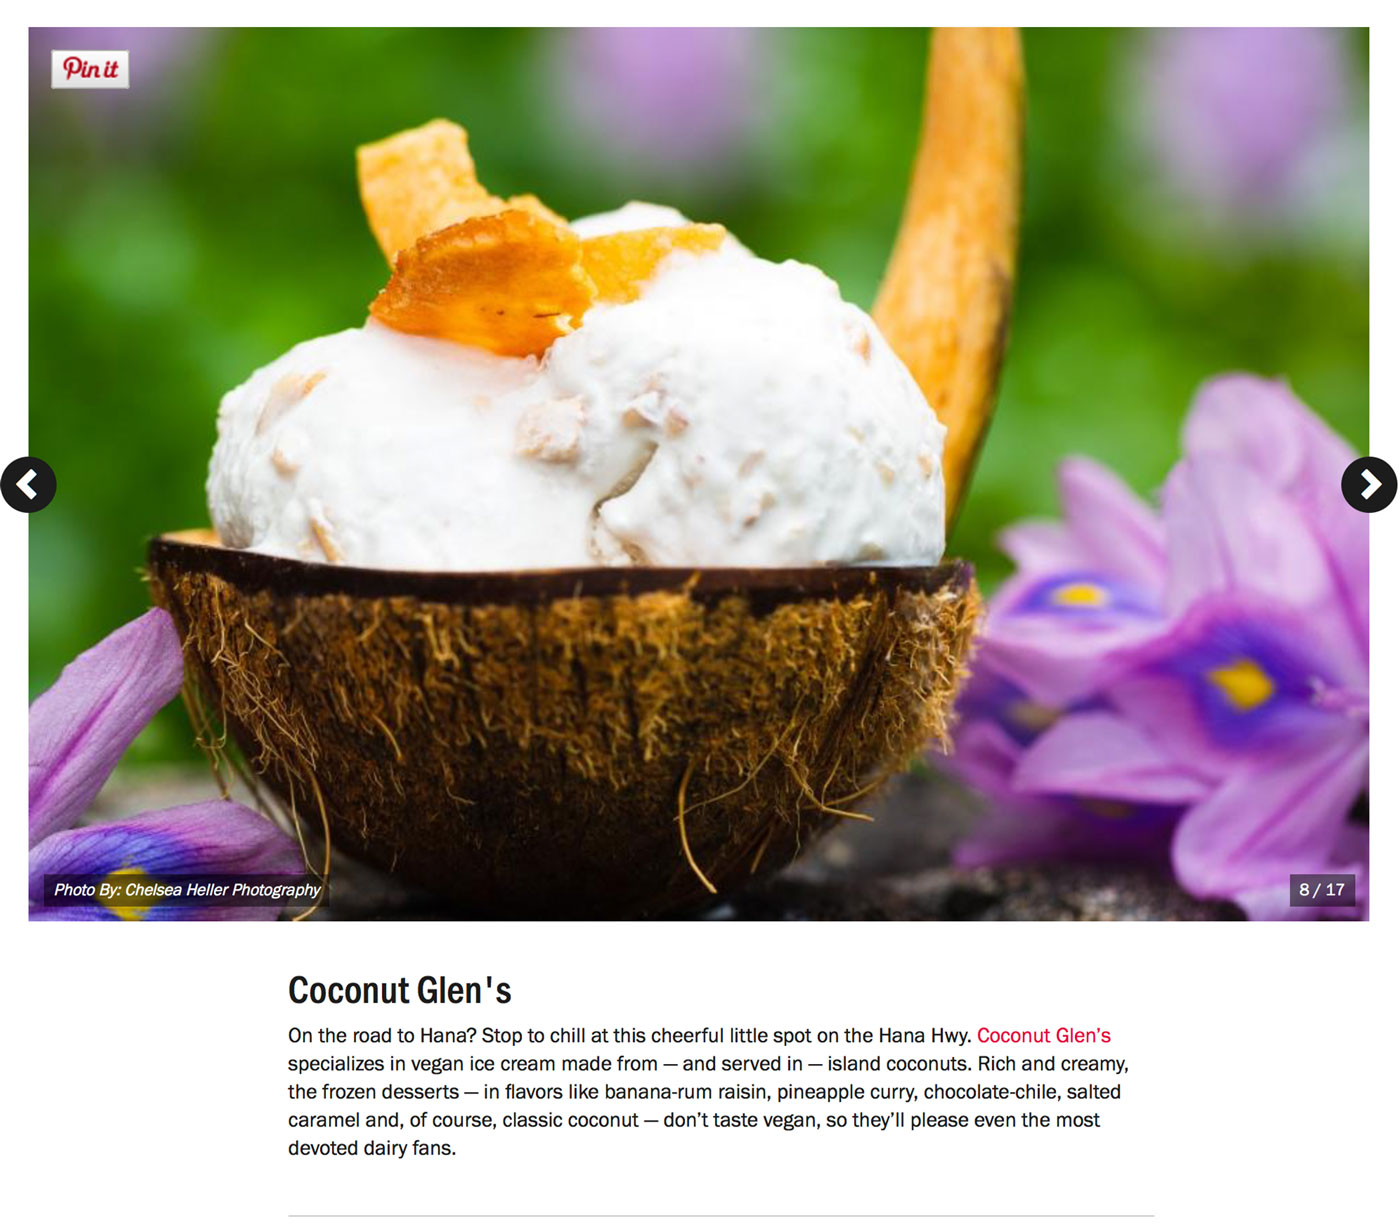 "Screenshot from Food Network's Guide to:<br><a href=""https://www.foodnetwork.com/restaurants/photos/restaurant-guide-maui"" target=""_blank"" rel=""noopener noreferrer"">""The Best Restaurants on Maui""</a> - Coconut Glens.</br>"